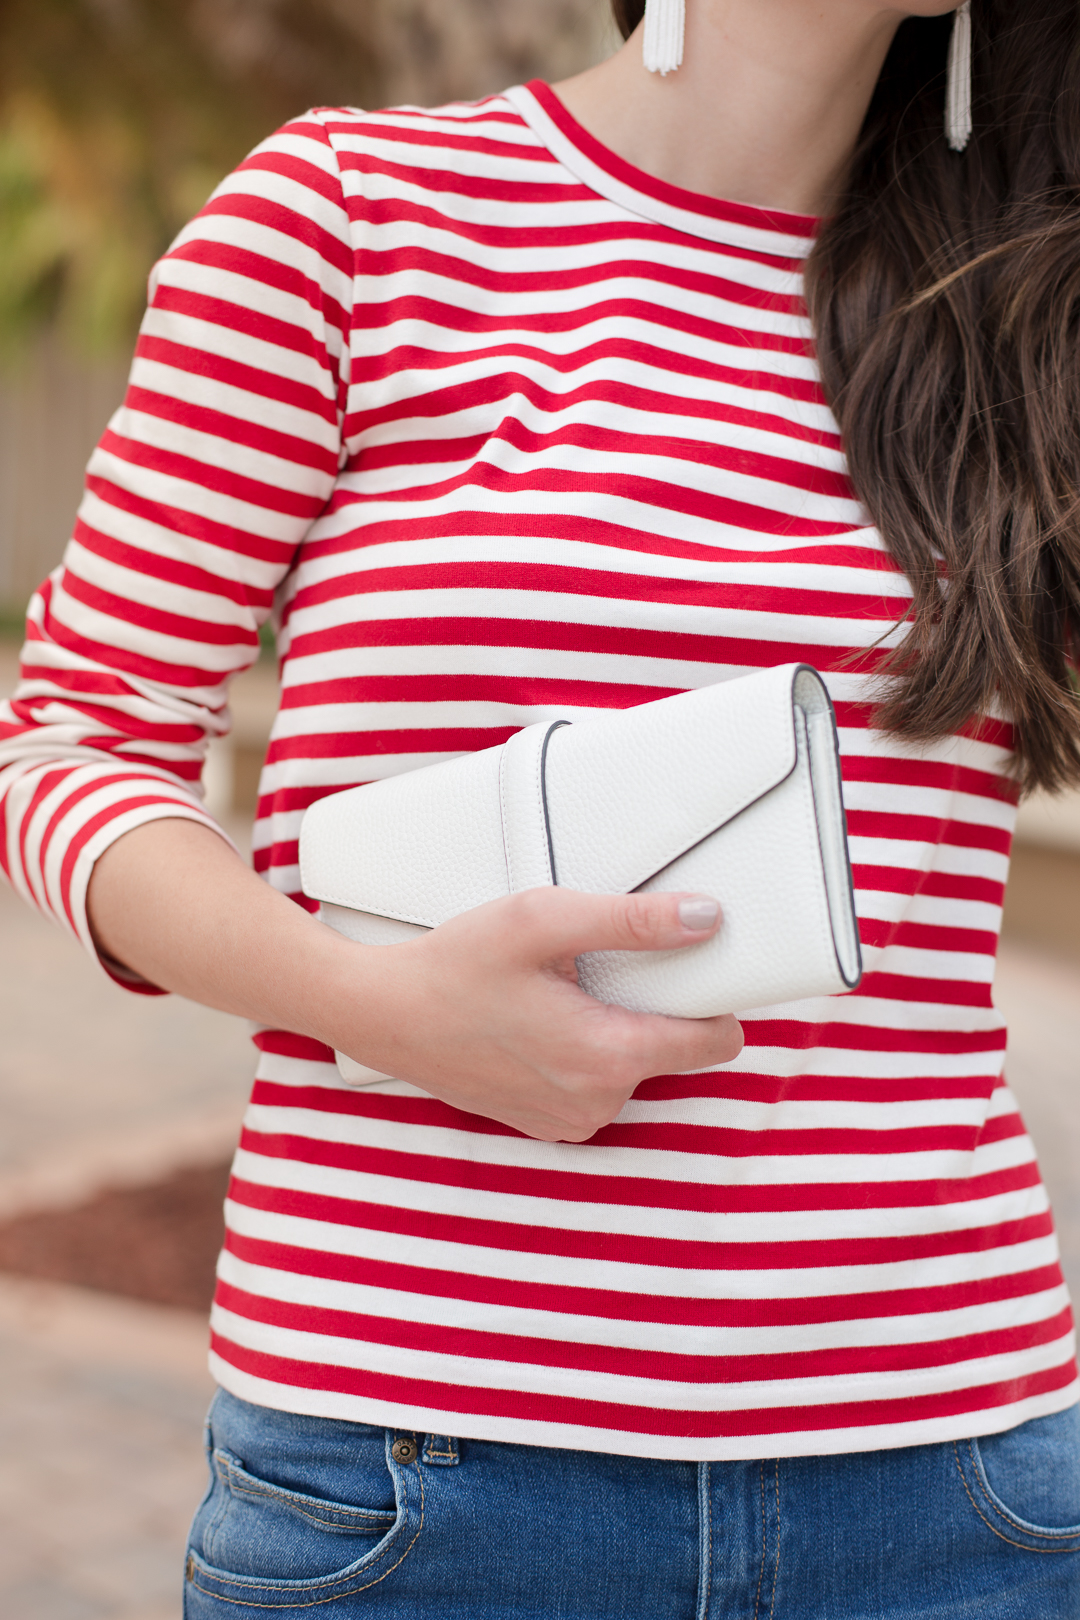 This white ECCO clutch is perfect for summer